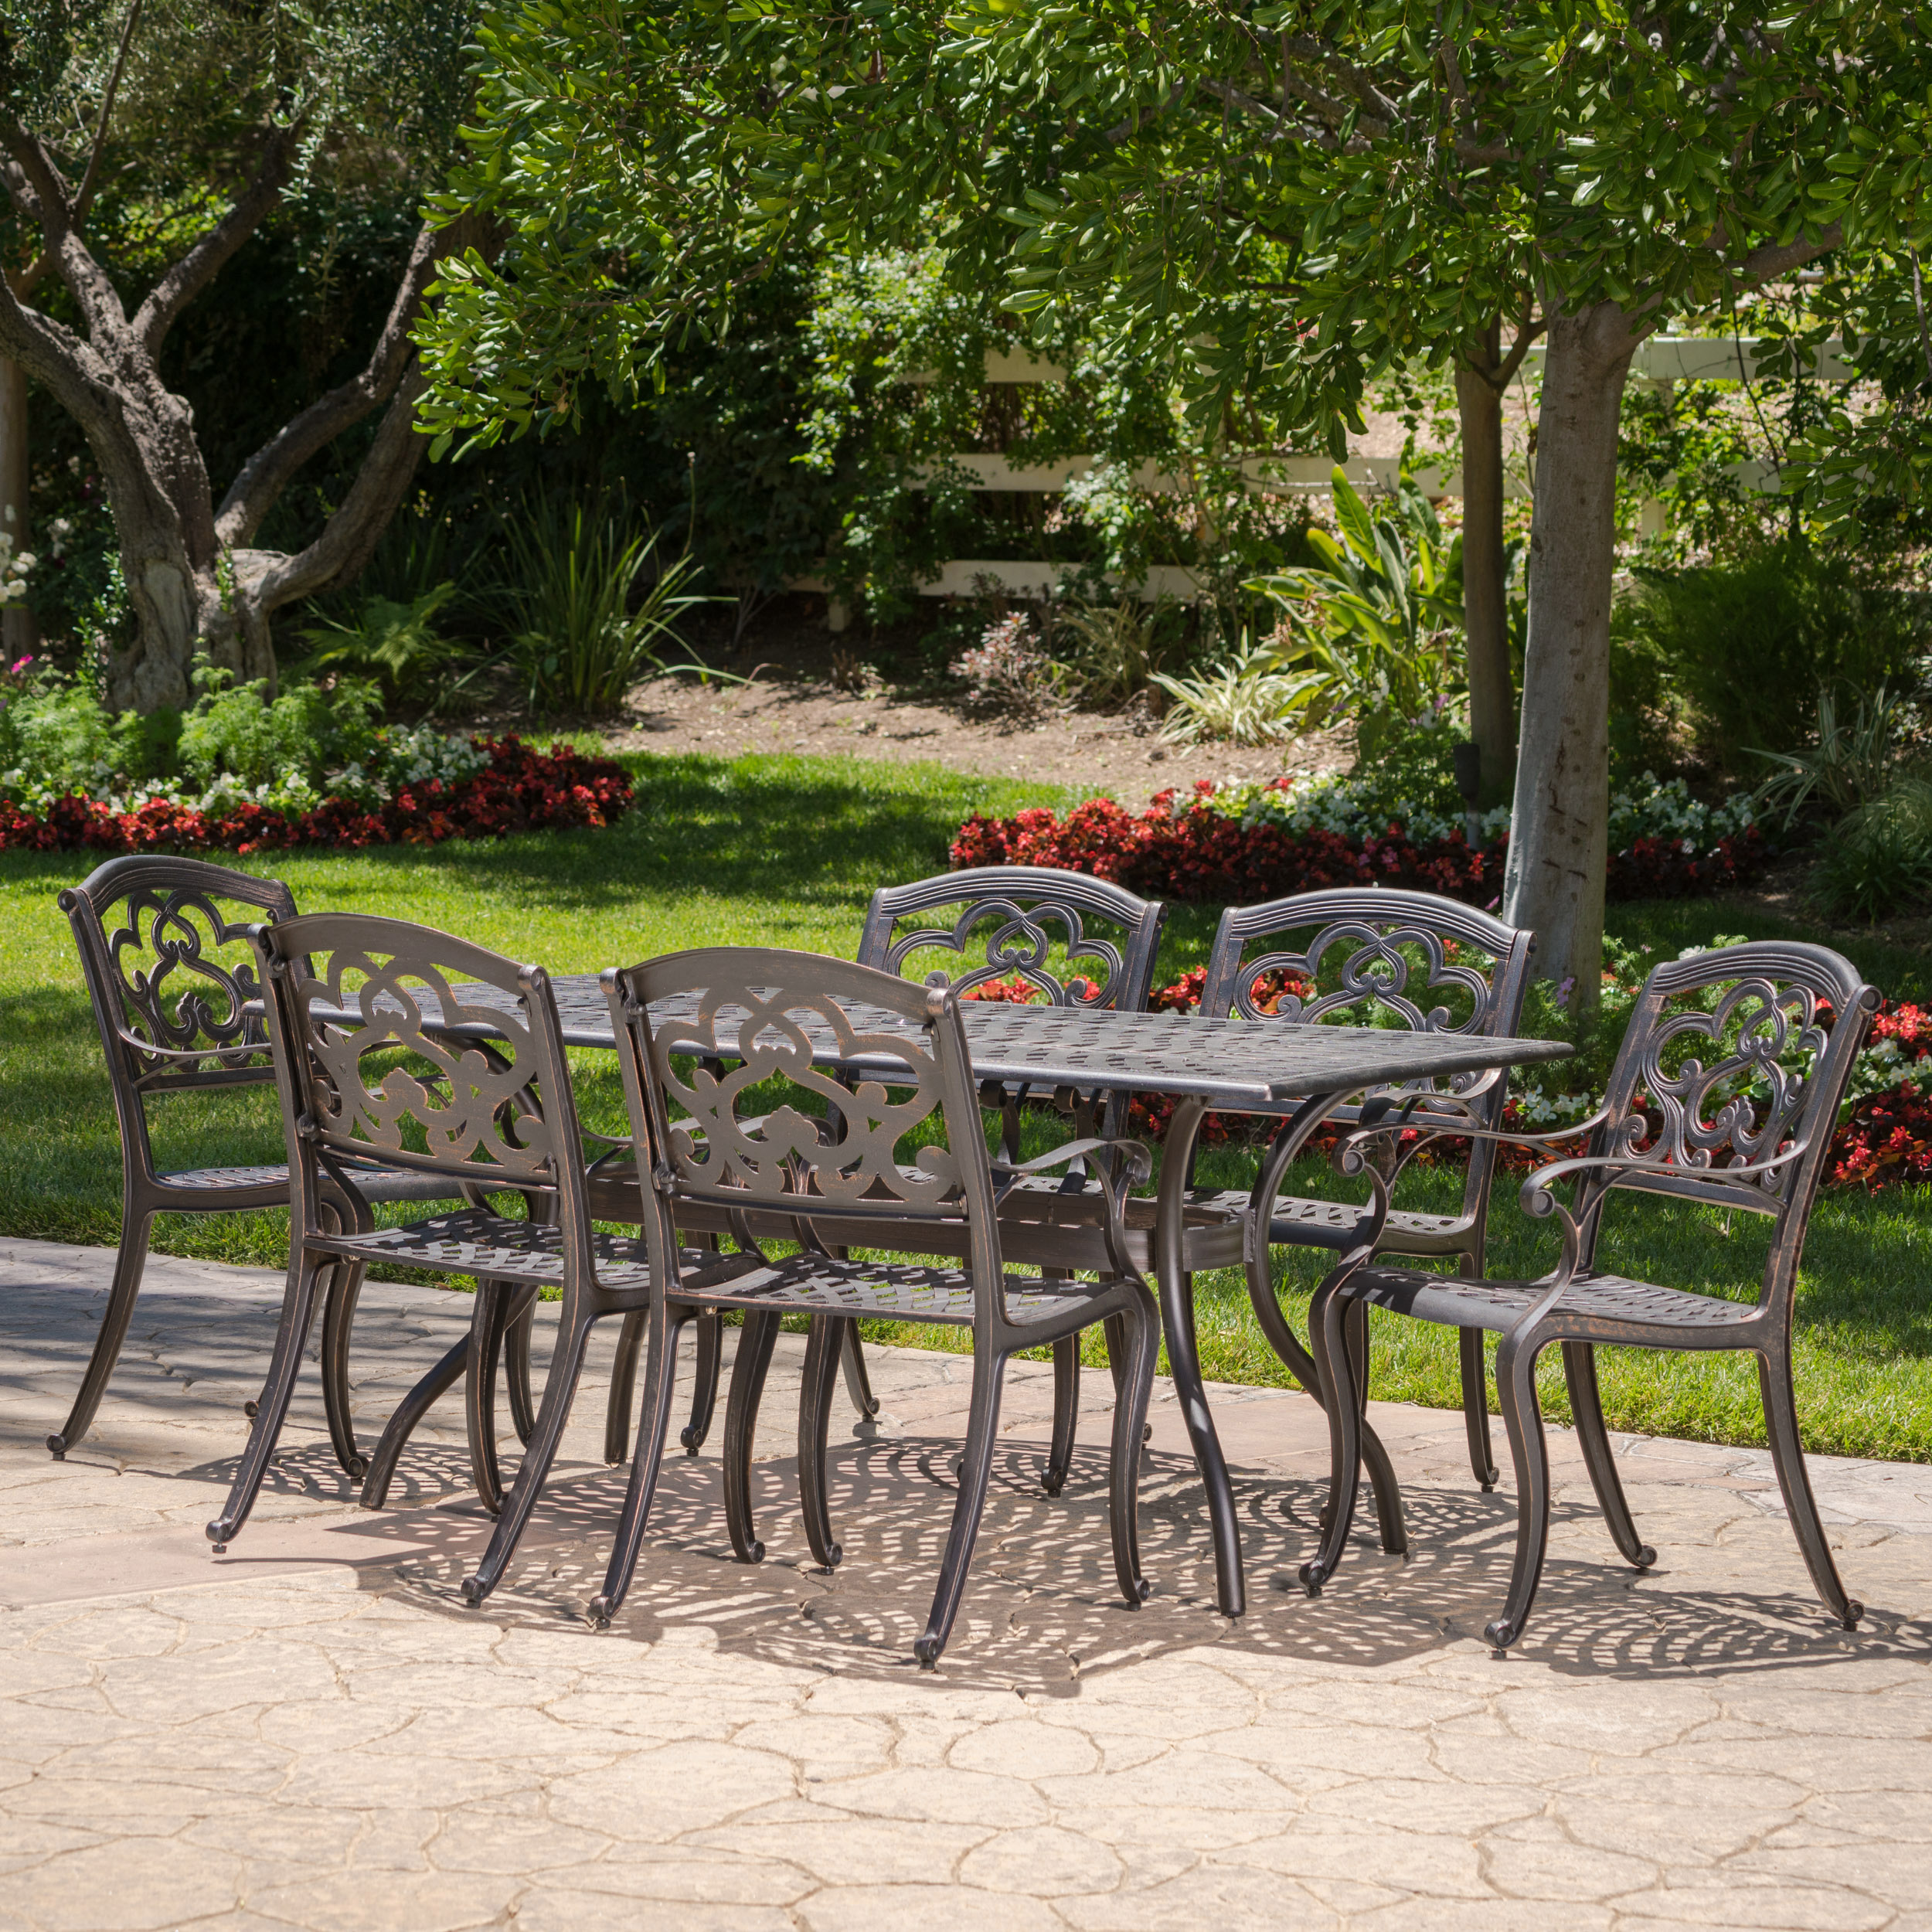 Atlanta Outdoor 7 Piece Cast Aluminum Rectangular Dining Set, Shiny Copper Finish